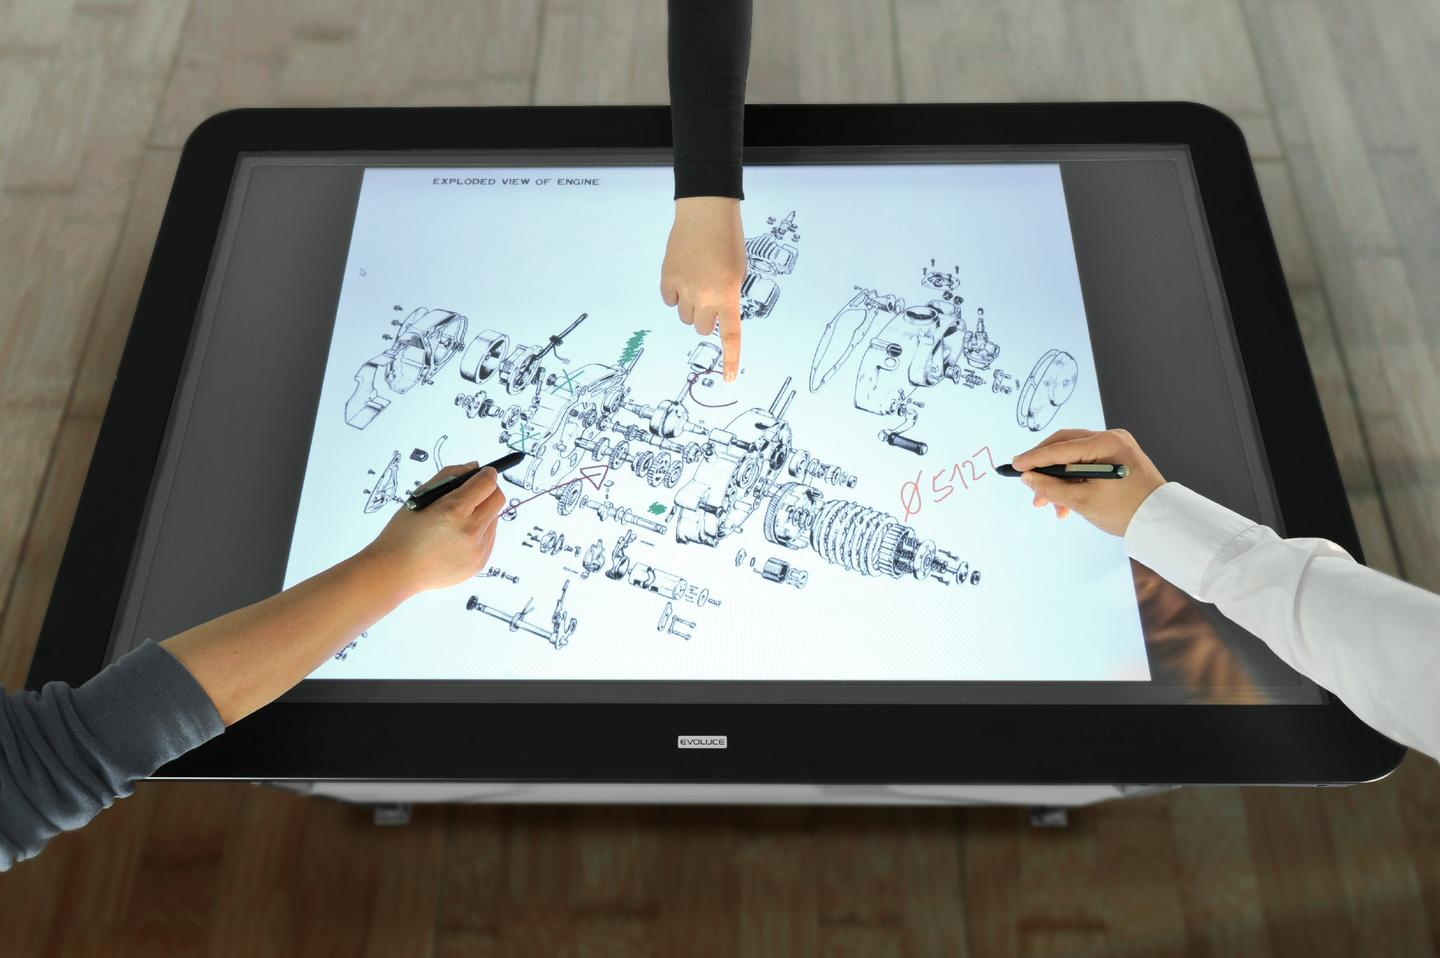 The interface can register unlimited contact points from both stylus and human touch, useful in the design process